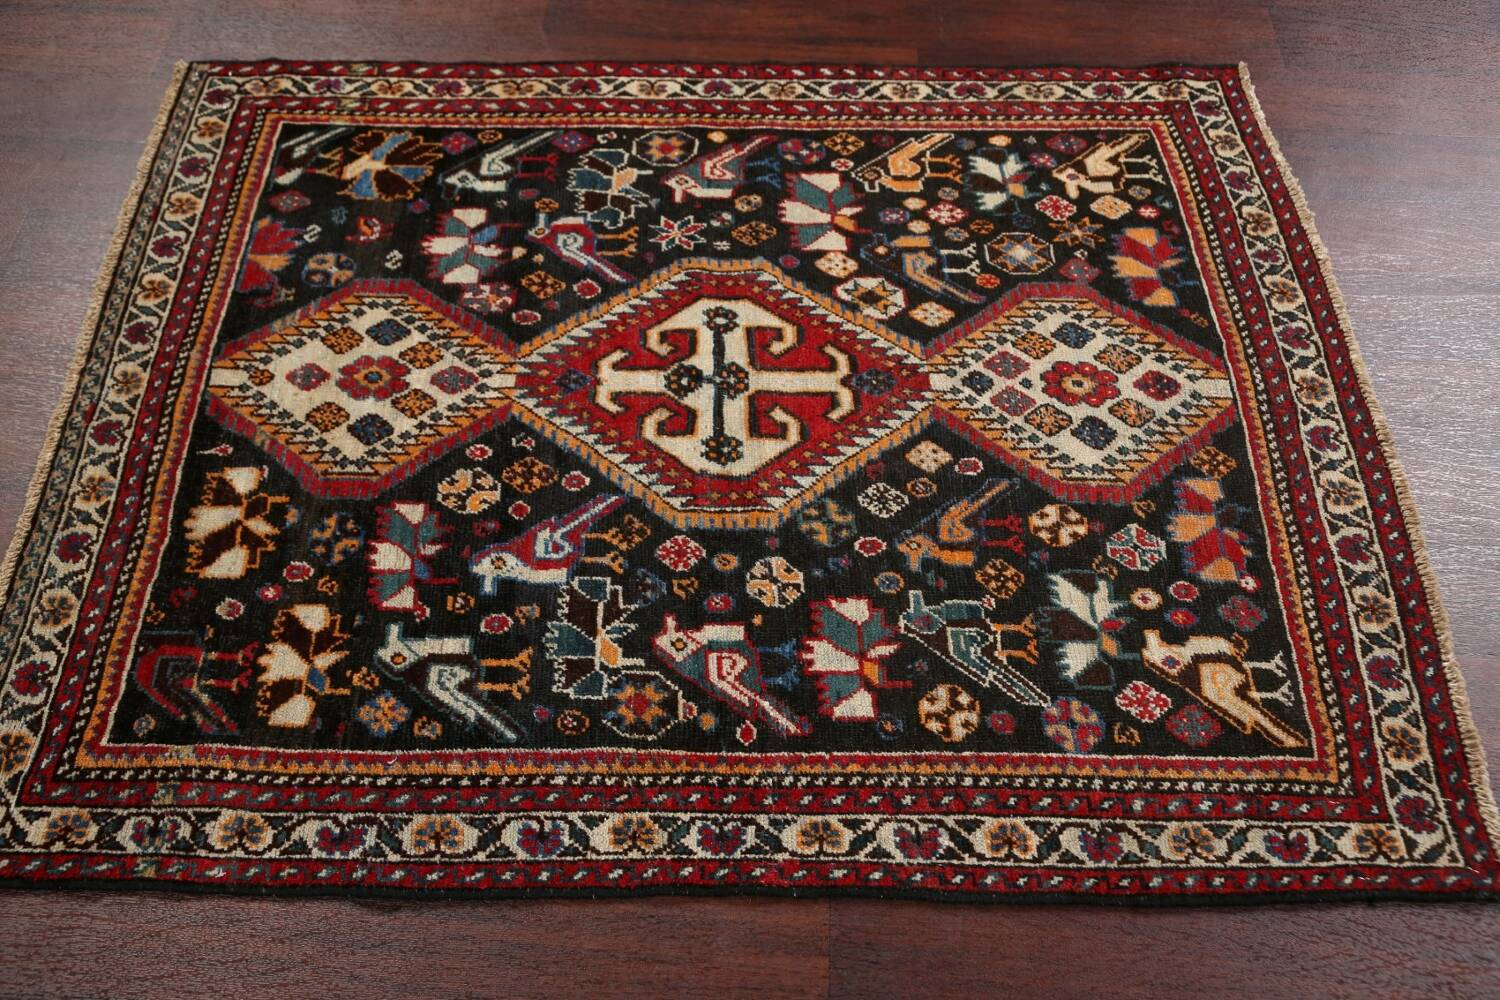 Antique Pre-1900 Tribal Bakhtiari Persian Area Rug 4x5 image 13